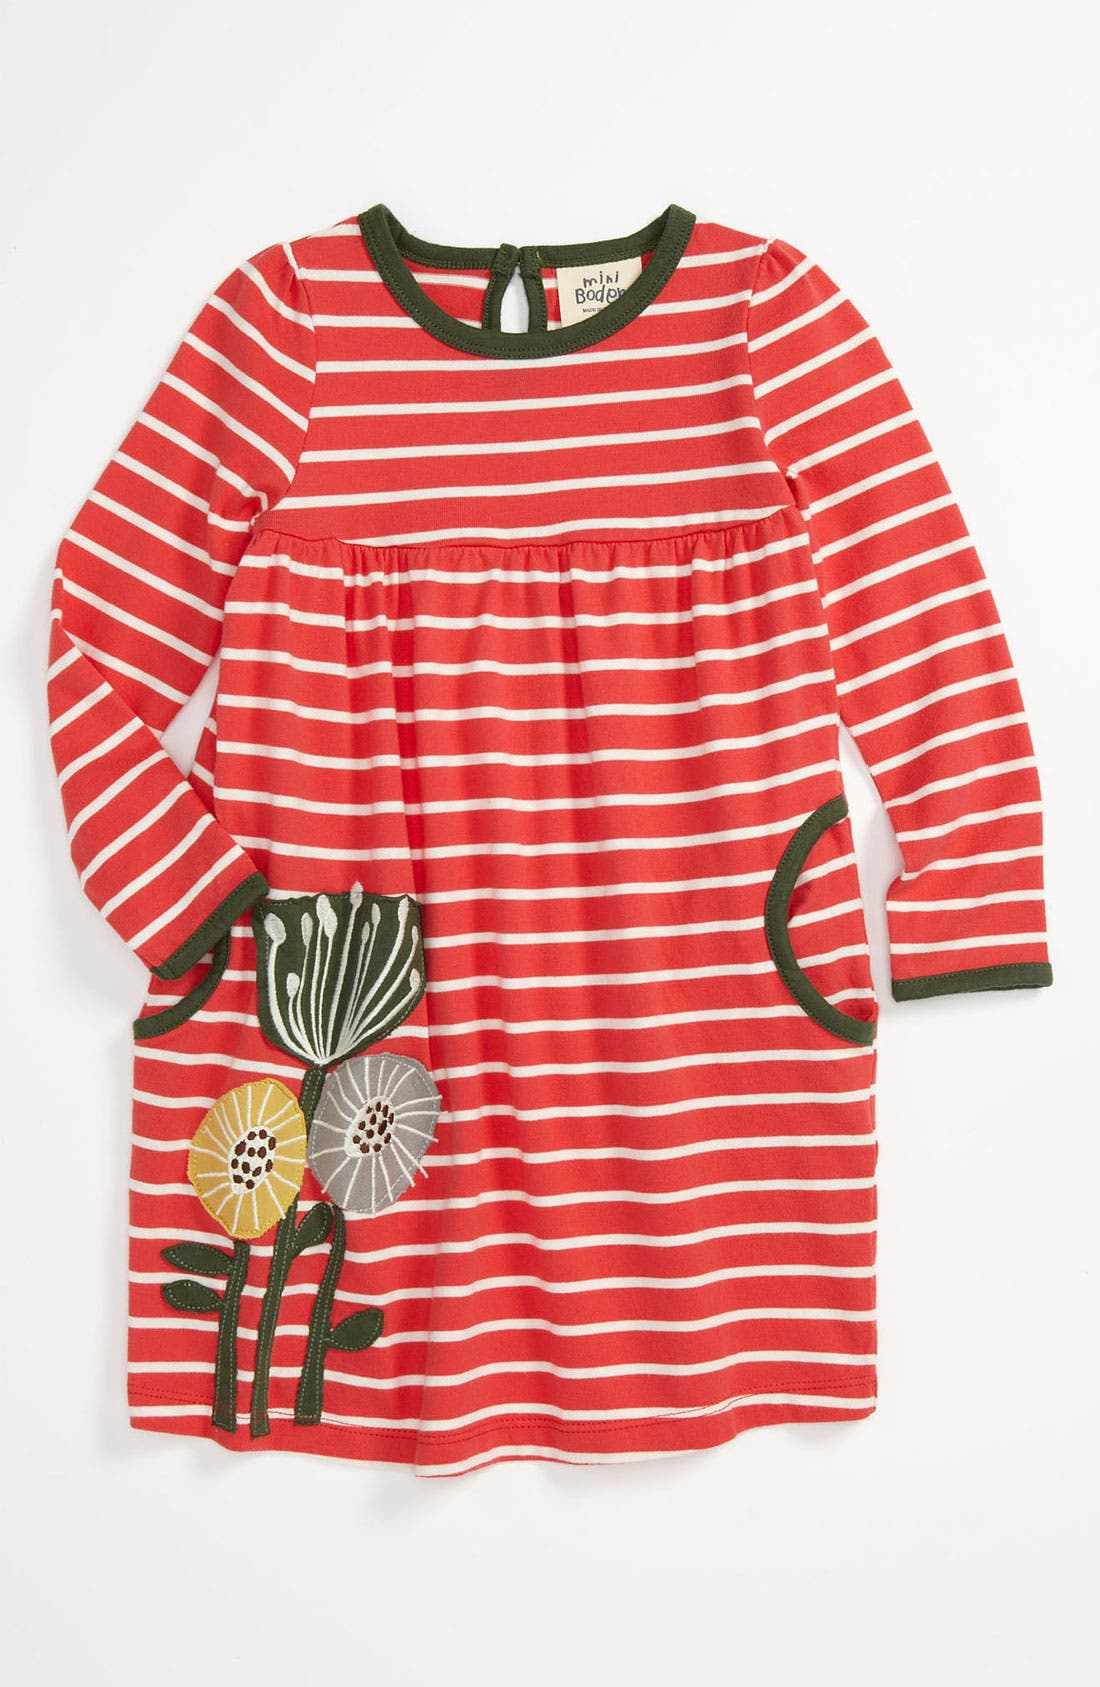 Main Image - Mini Boden 'Fun Appliqué' Dress (Toddler)